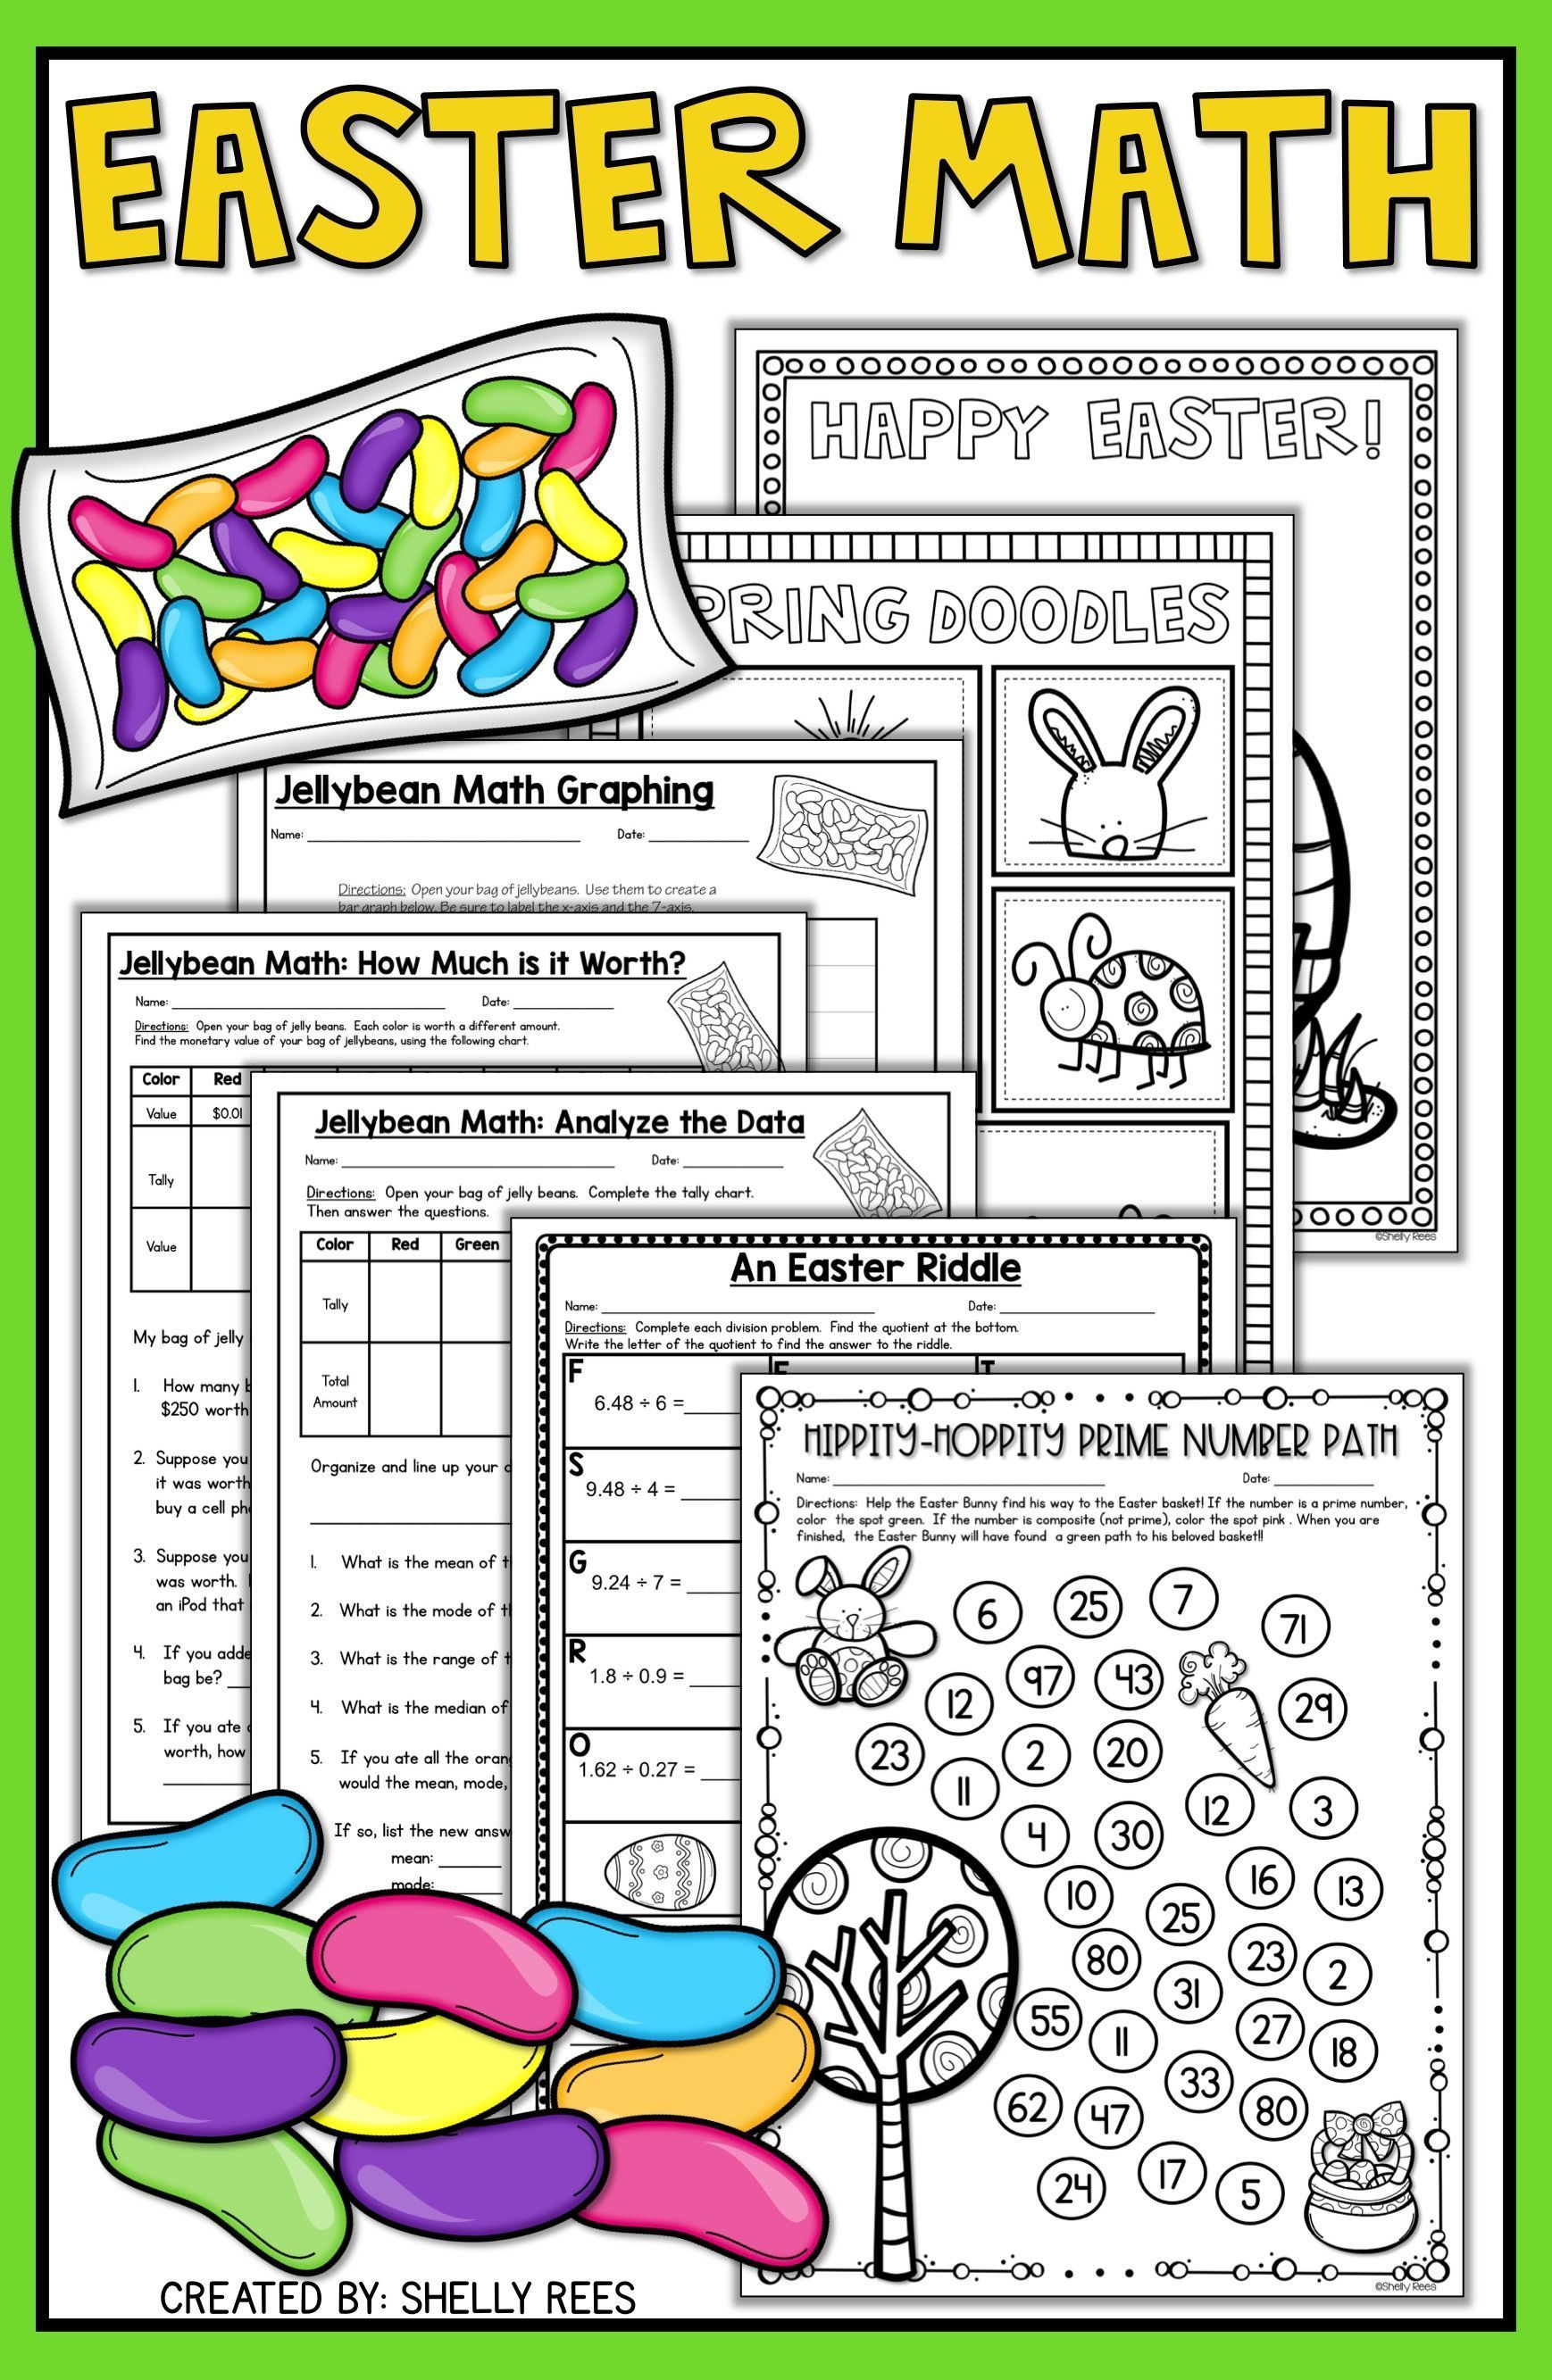 Easter Math Activities Are Fun For 3rd Grade 4th Grade 5th Grade And Middle School Students With T Easter Math Worksheets Easter Math Easter Math Activities